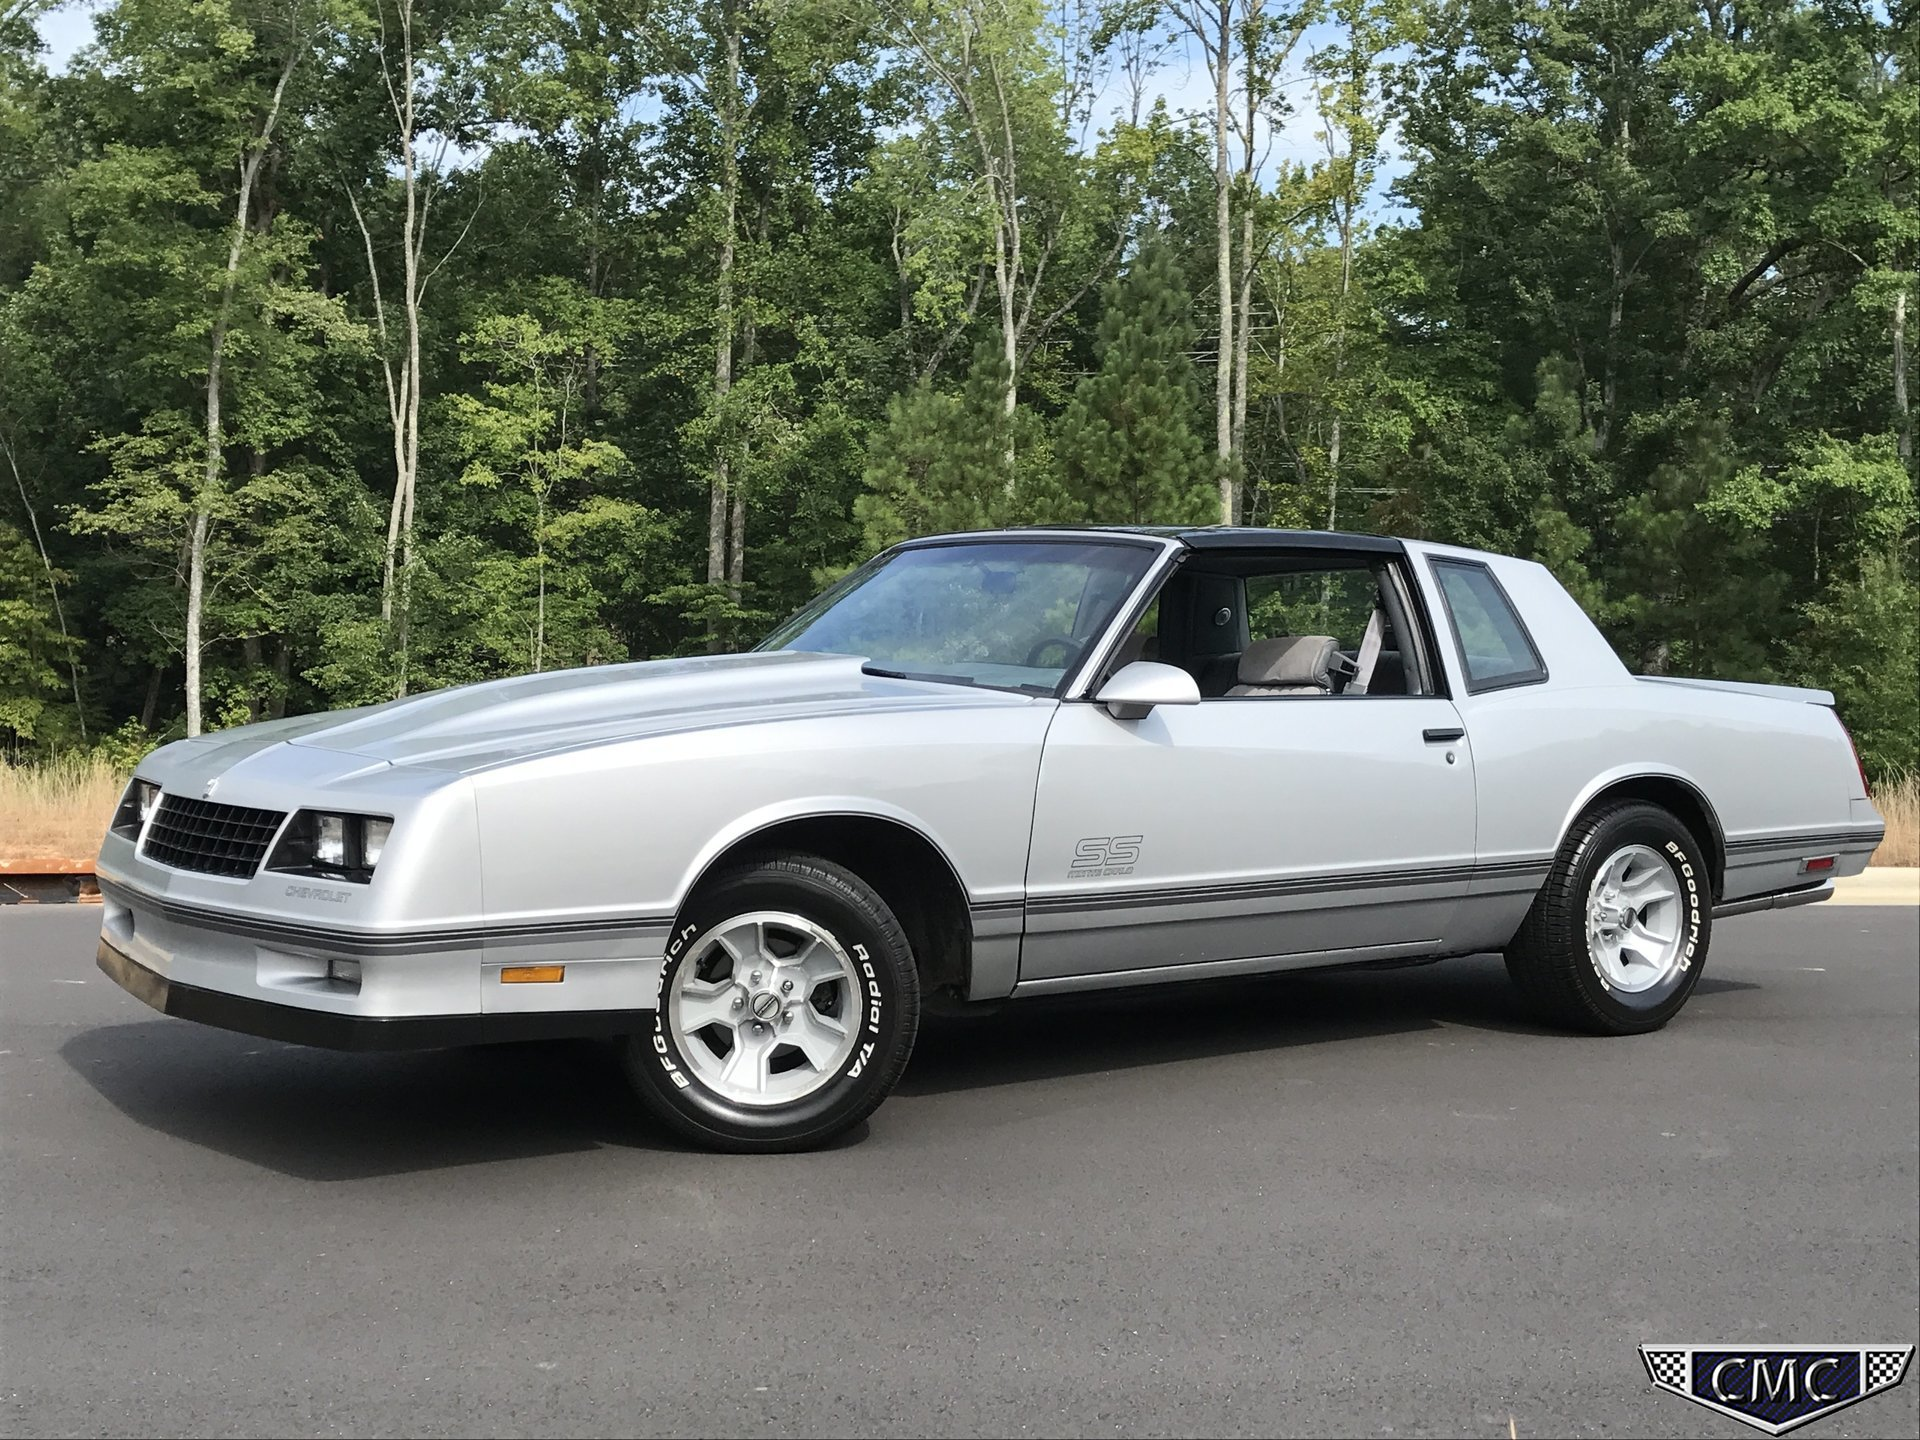 1988 chevrolet monte carlo ss for sale 63019 mcg. Black Bedroom Furniture Sets. Home Design Ideas